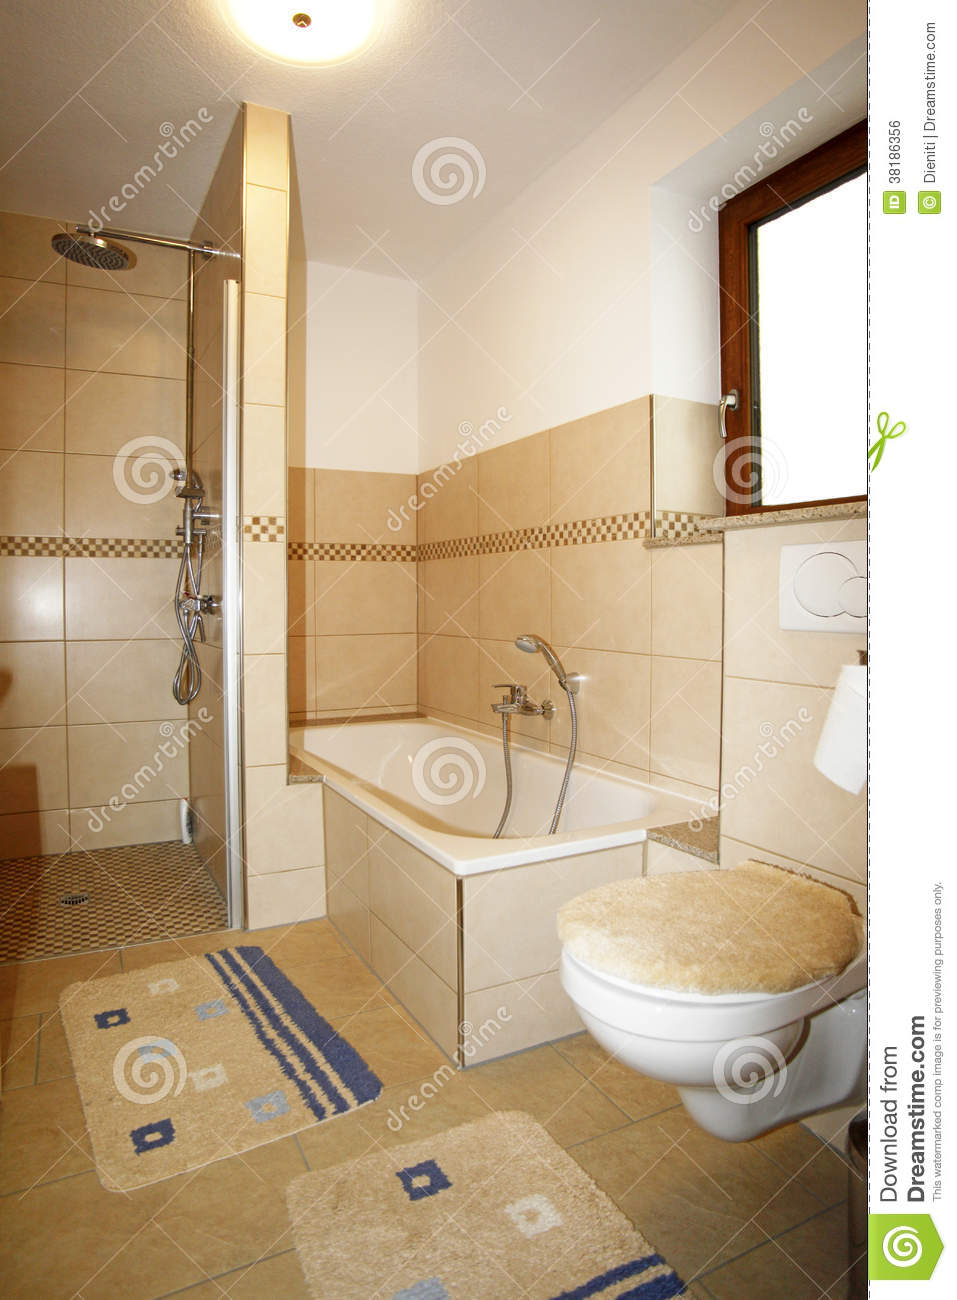 Cuartos De Baño En Beige:Brown and Beige Bathroom